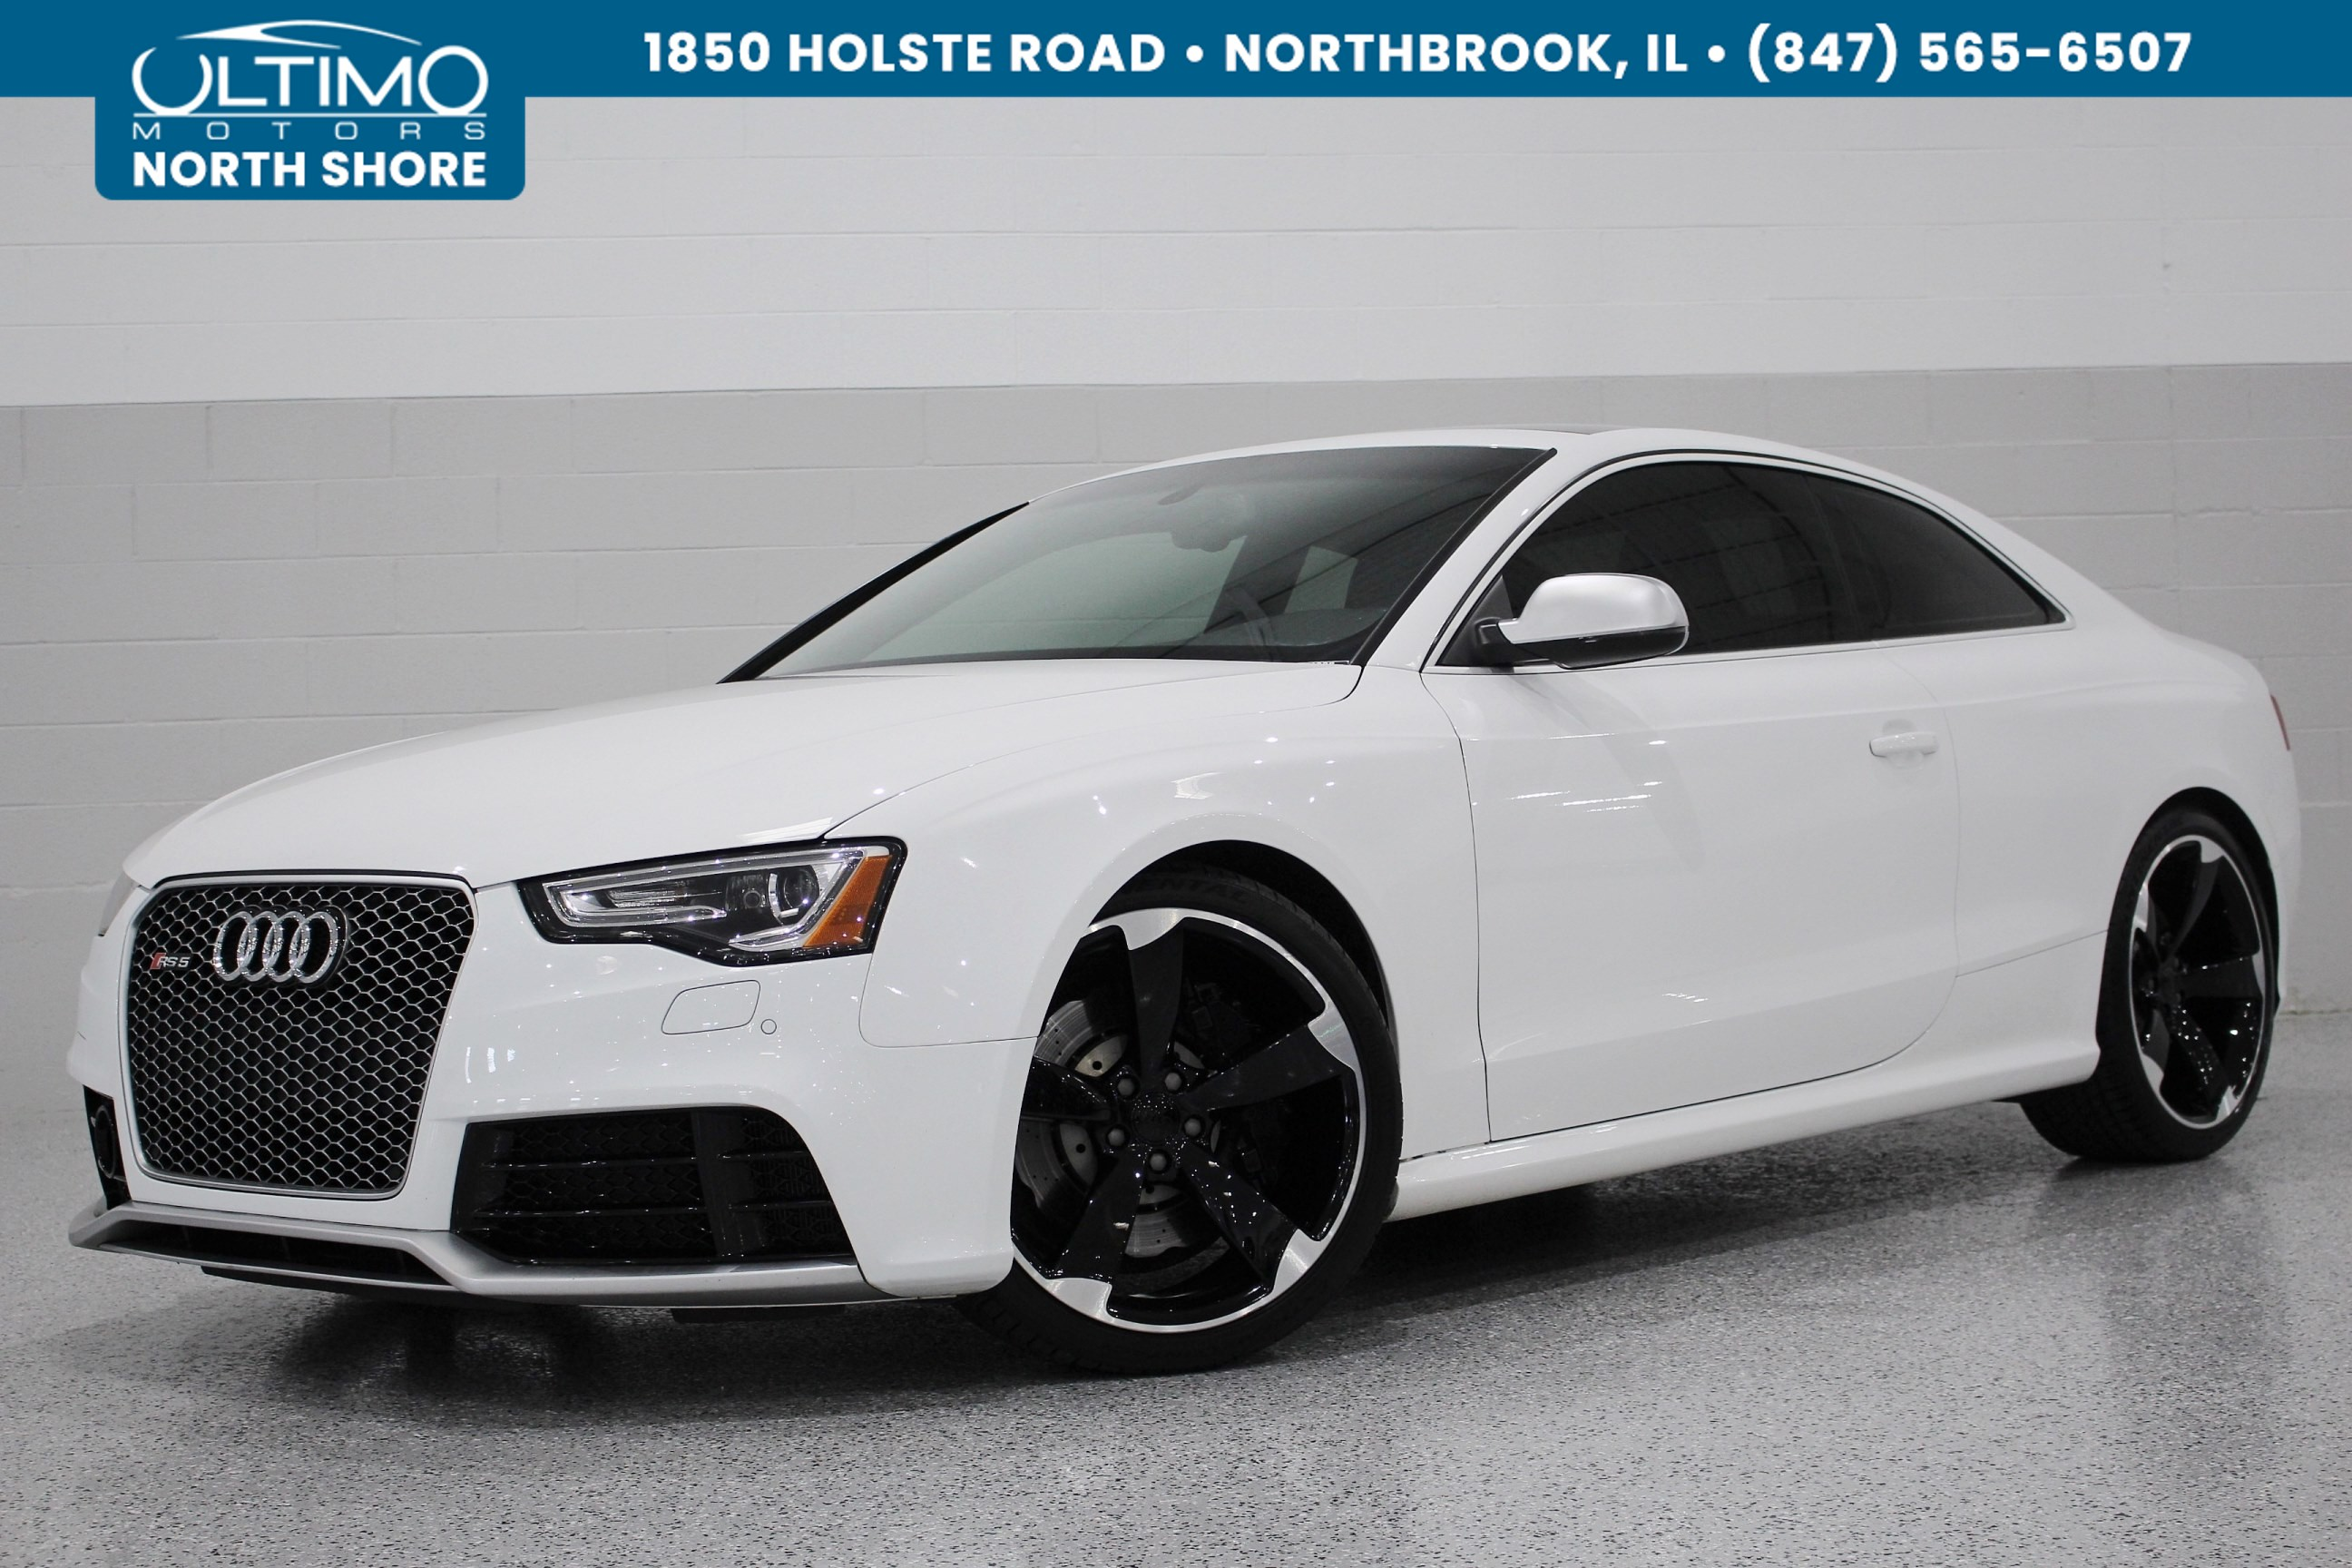 Pre-Owned 2013 Audi RS 5 MMI Nav. Plus, Driver Assist, Sports Exhaust, 20 Inch Wheels, Aluminum Optic. MSRP $79,345